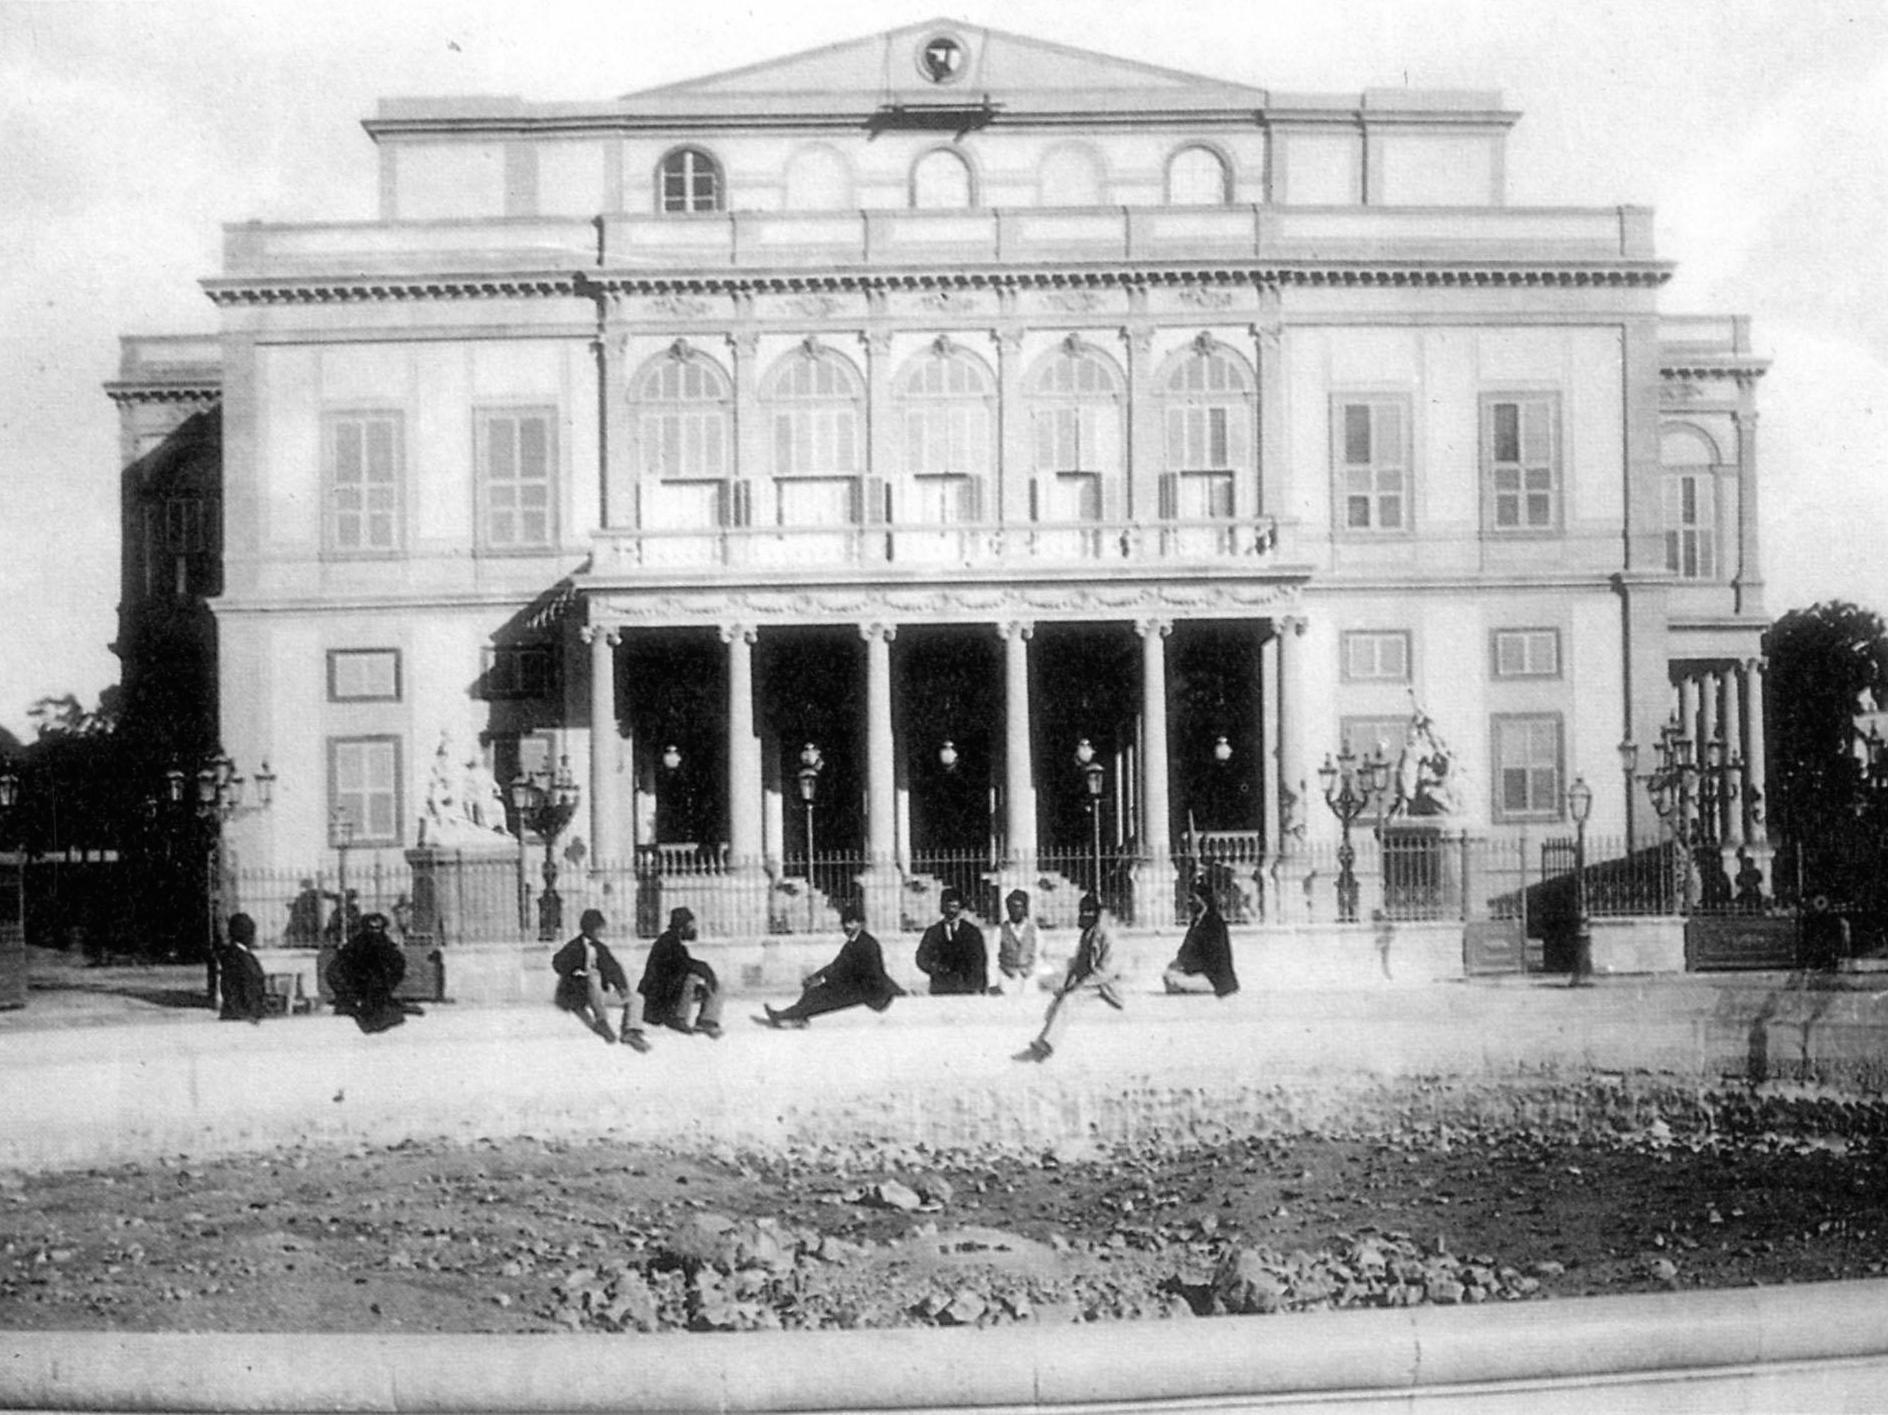 The Khedivial Opera House in the year it first opened in Cairo, 1869. Courtesy of the Bibliotheca Alexandrina.